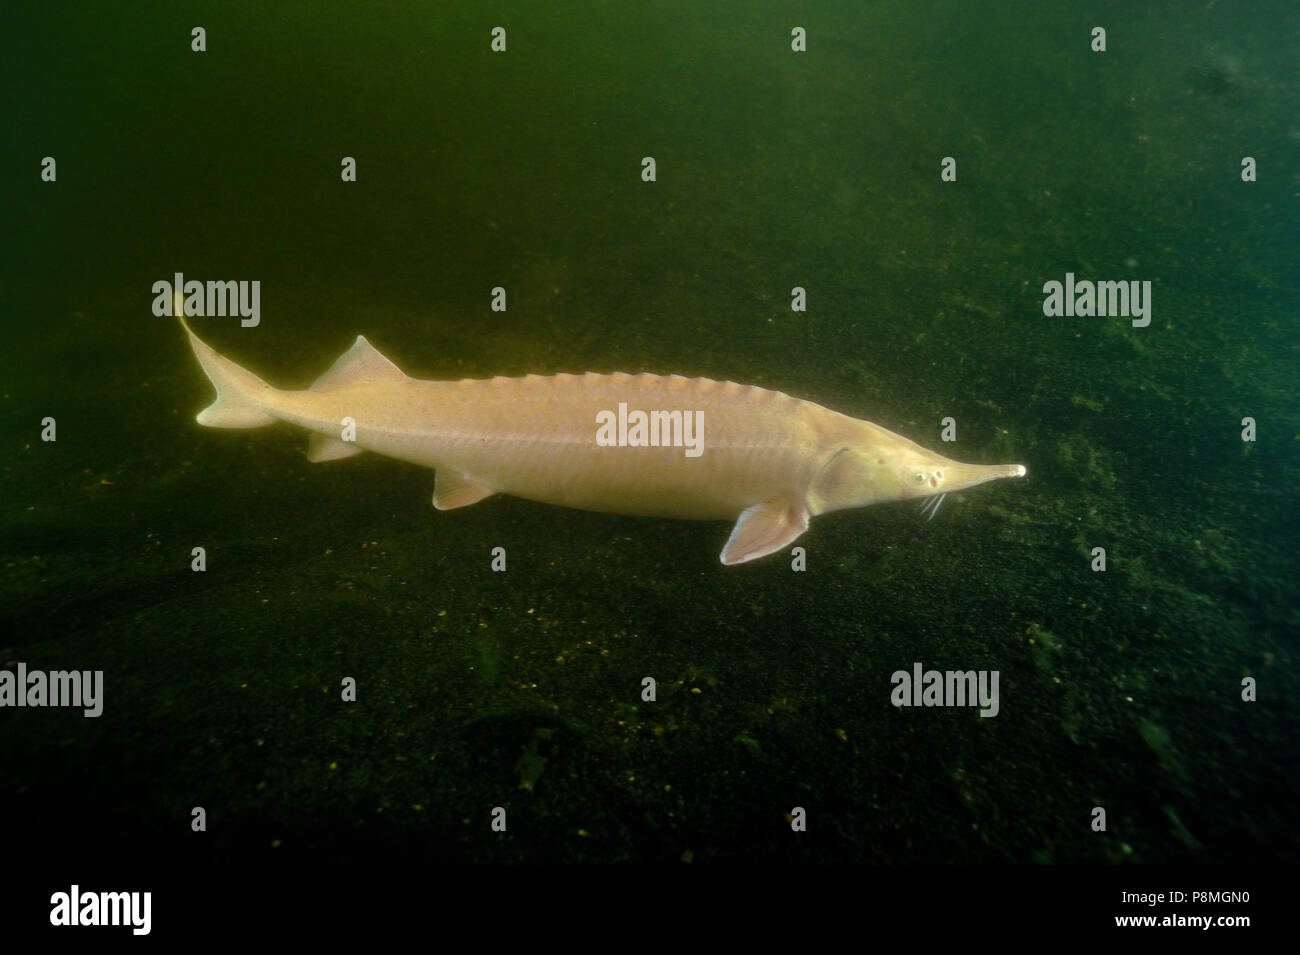 Albino sturgeon is a cultivated hybrid species without natural habitat - Stock Image